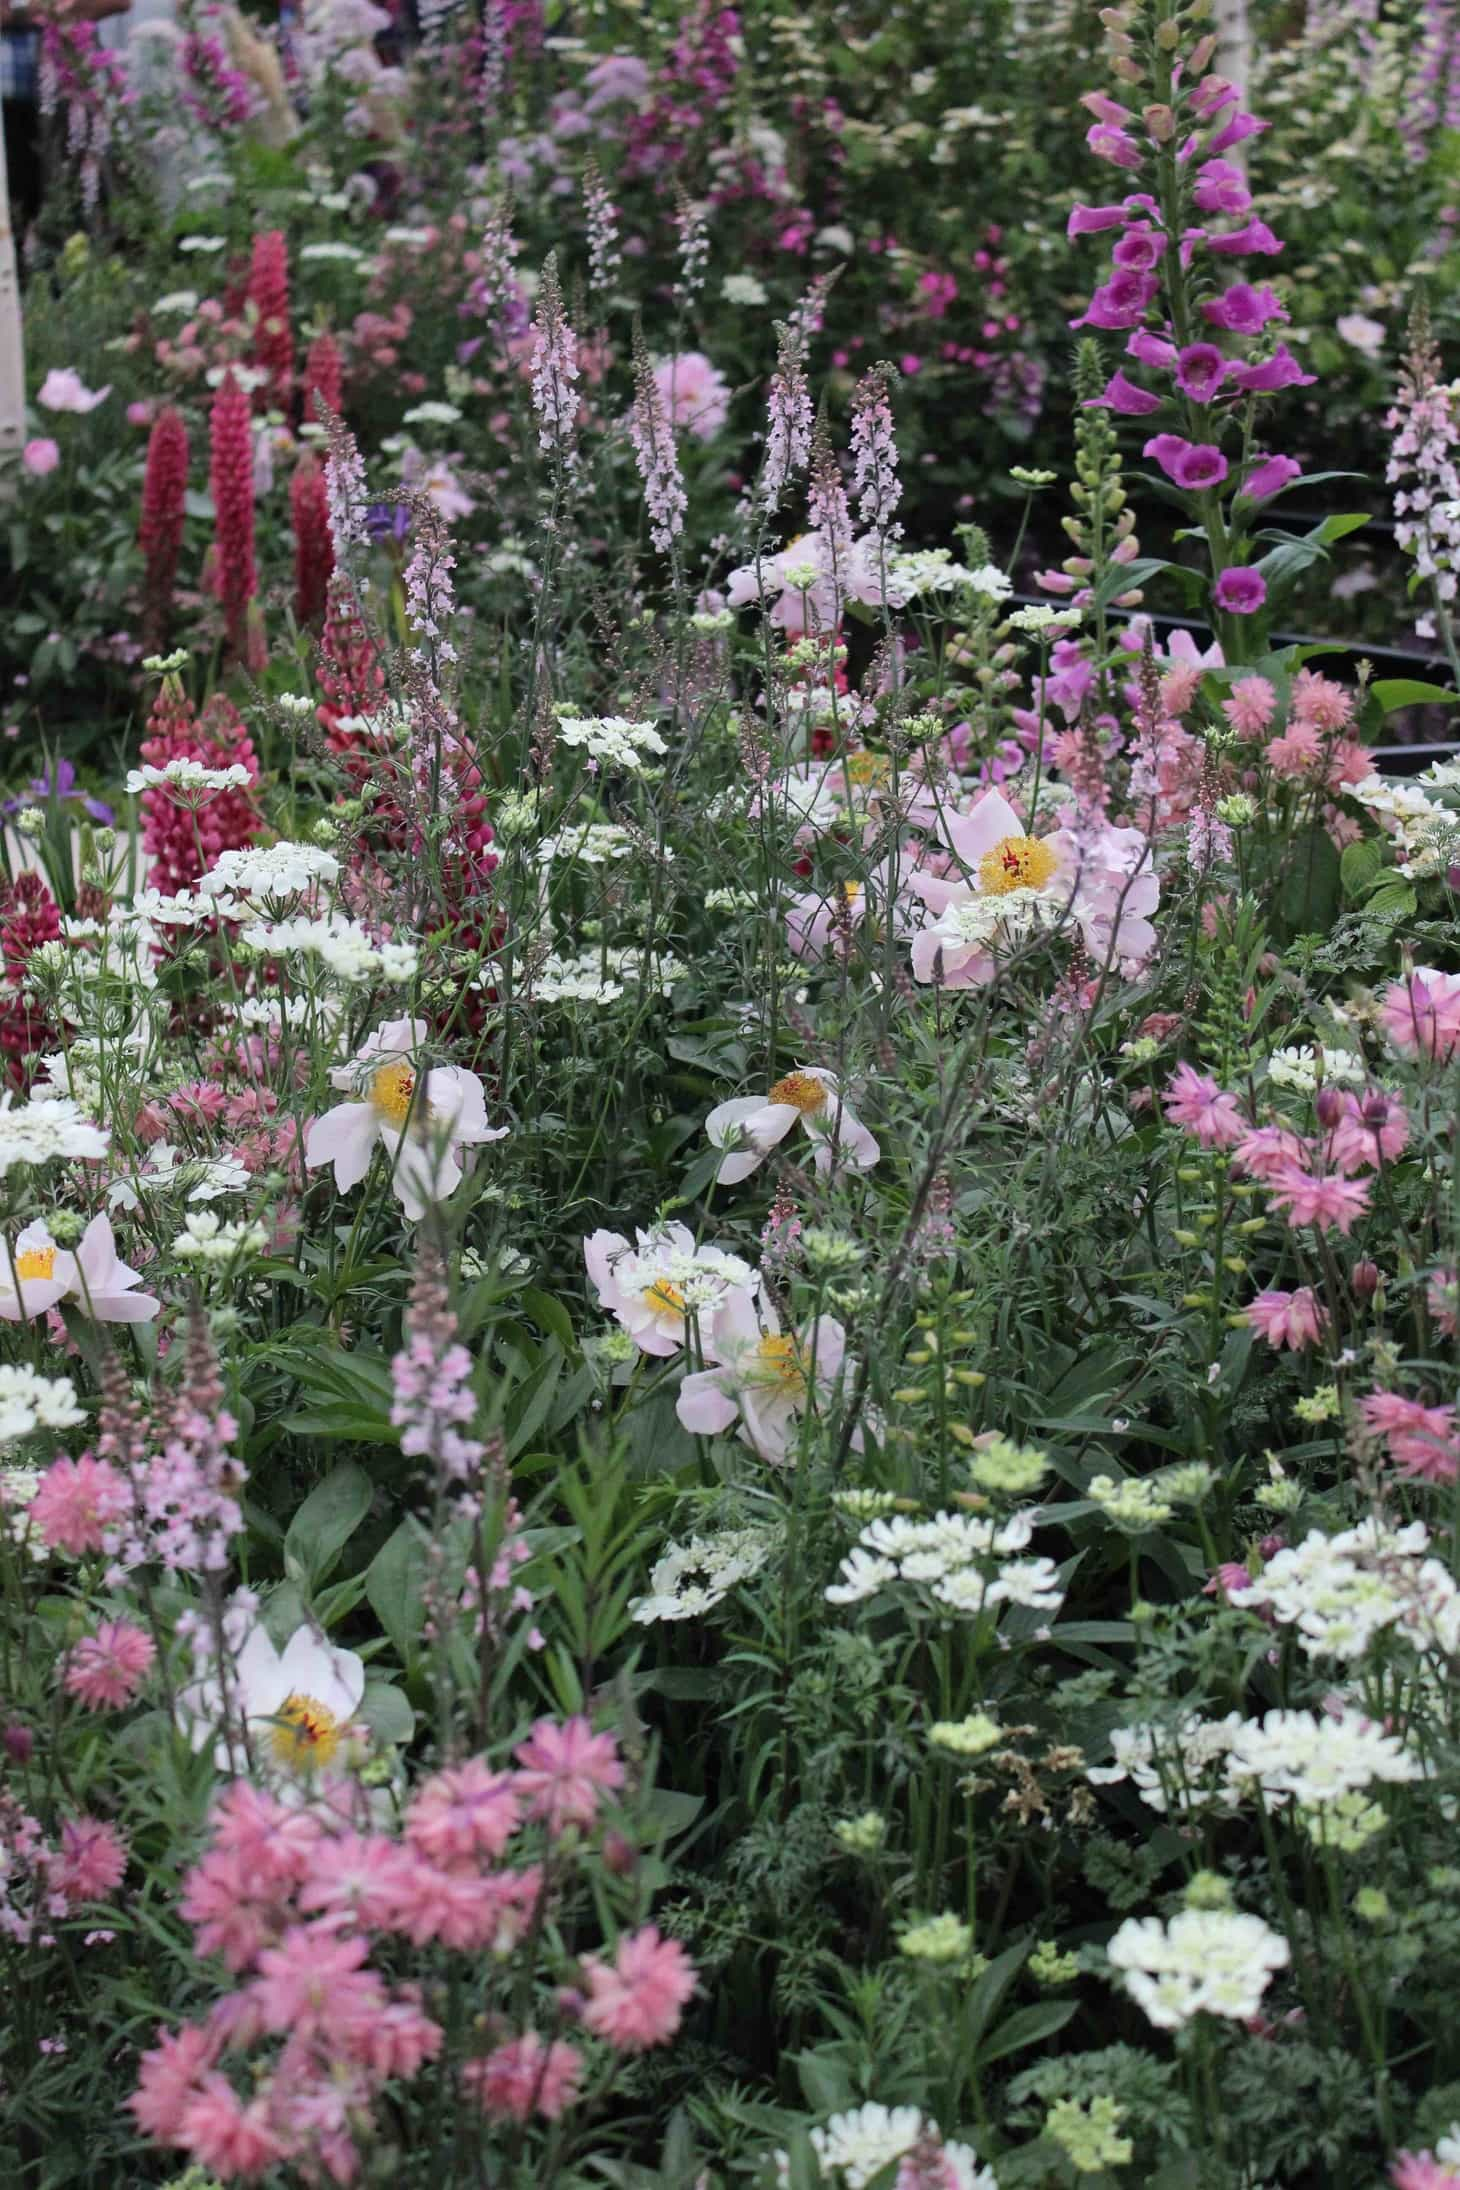 helsea flower show 2015, Lush roses, pink roses from chelsea, Garden roses, old roses, remembering chelsea flower show 2015, Breakthrough Breast Cancer Garden, Foxgloves and Lupiniums